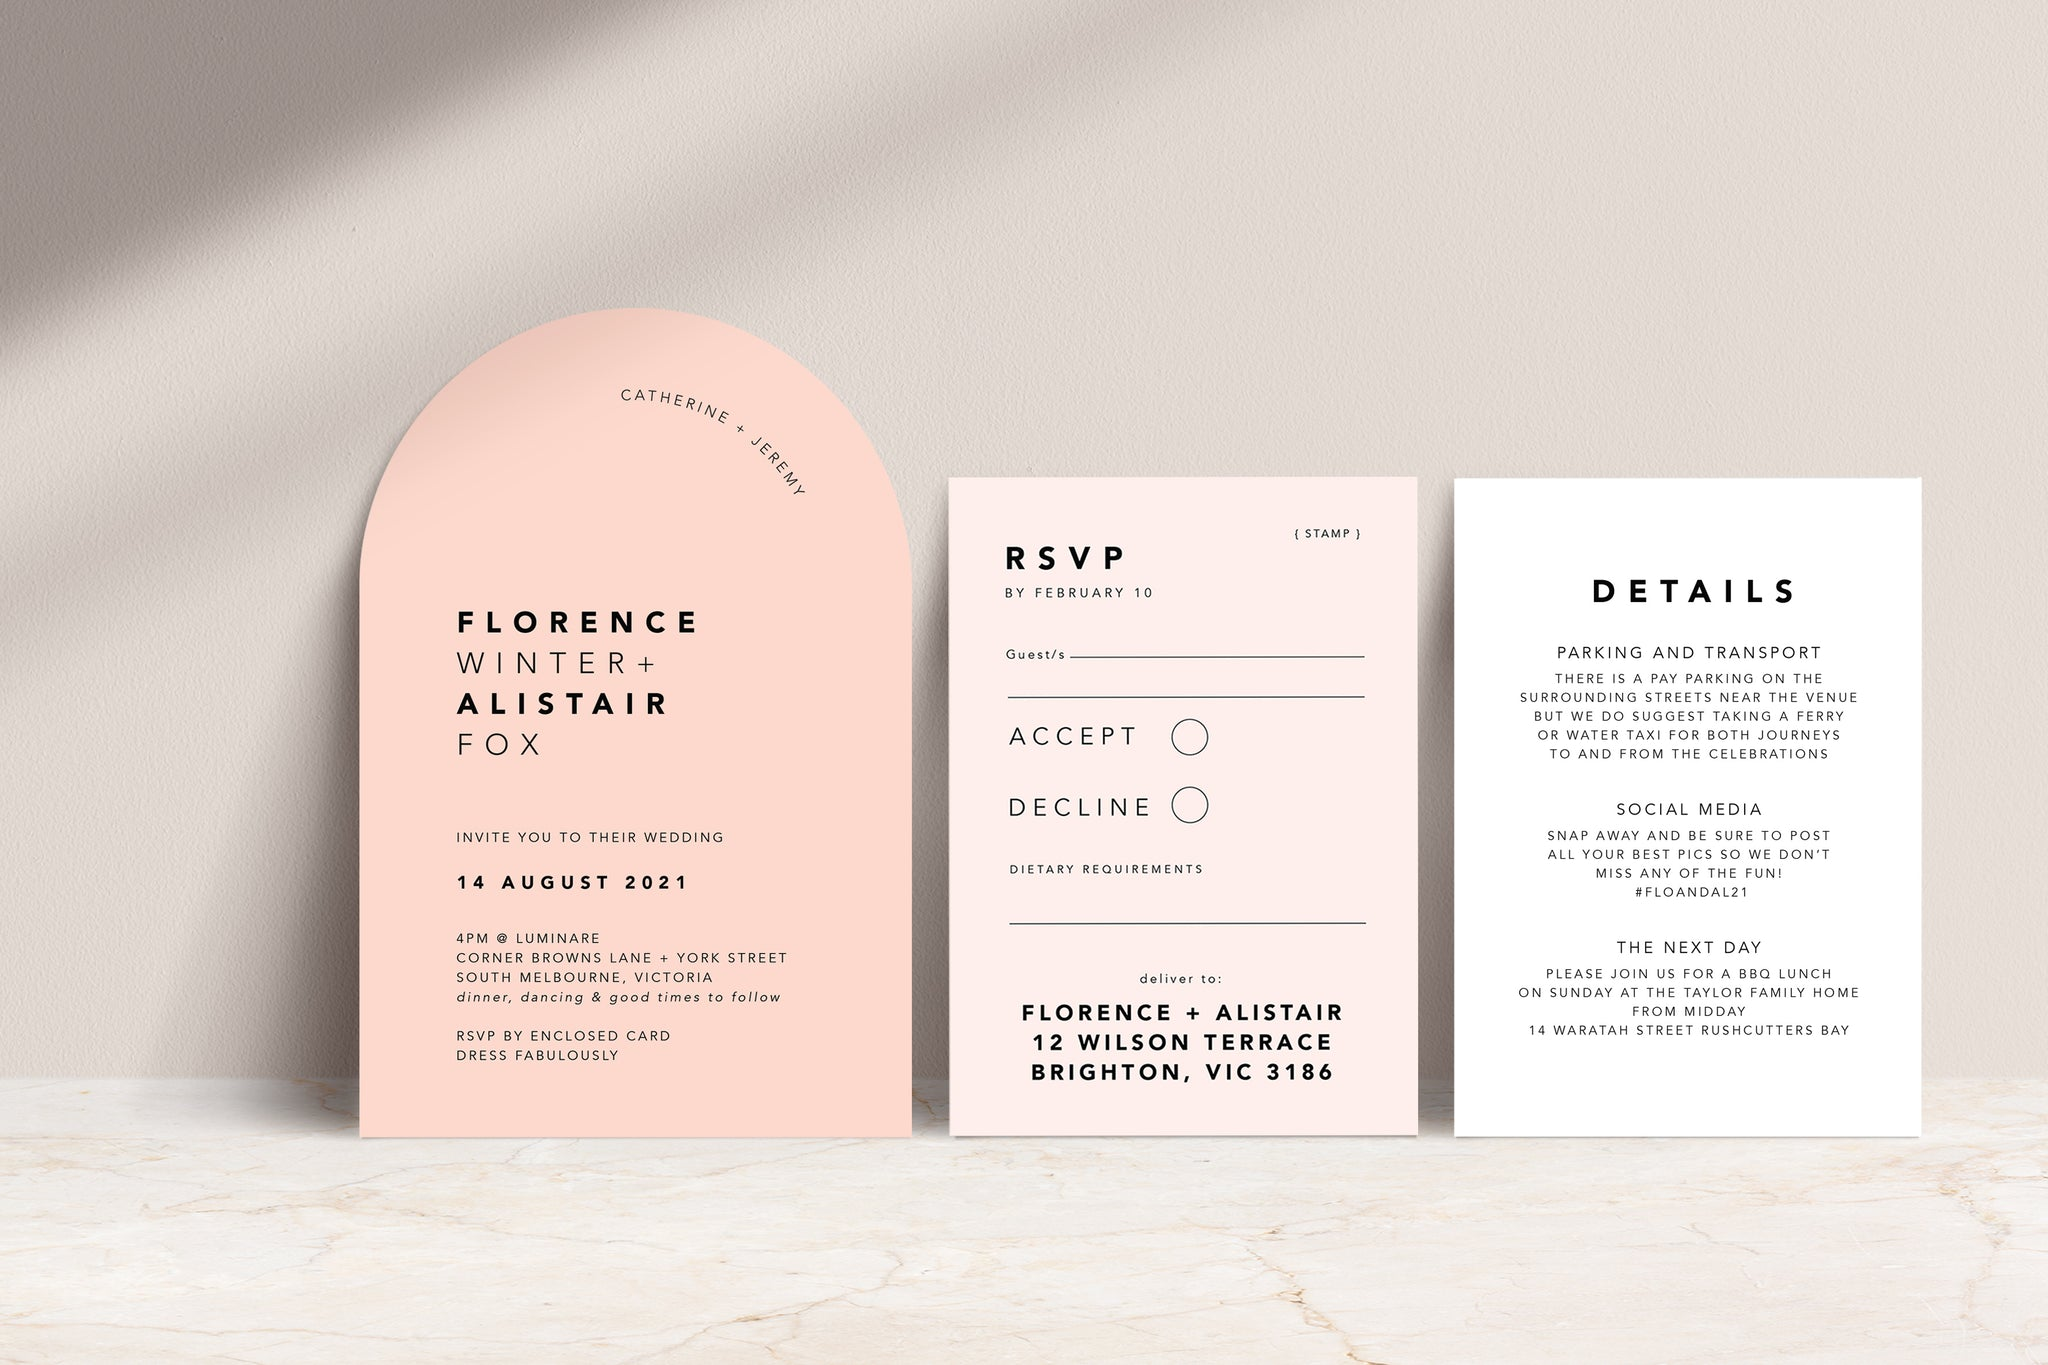 Blush Arch Invite, Nude RSVP, White Details all with black printed text